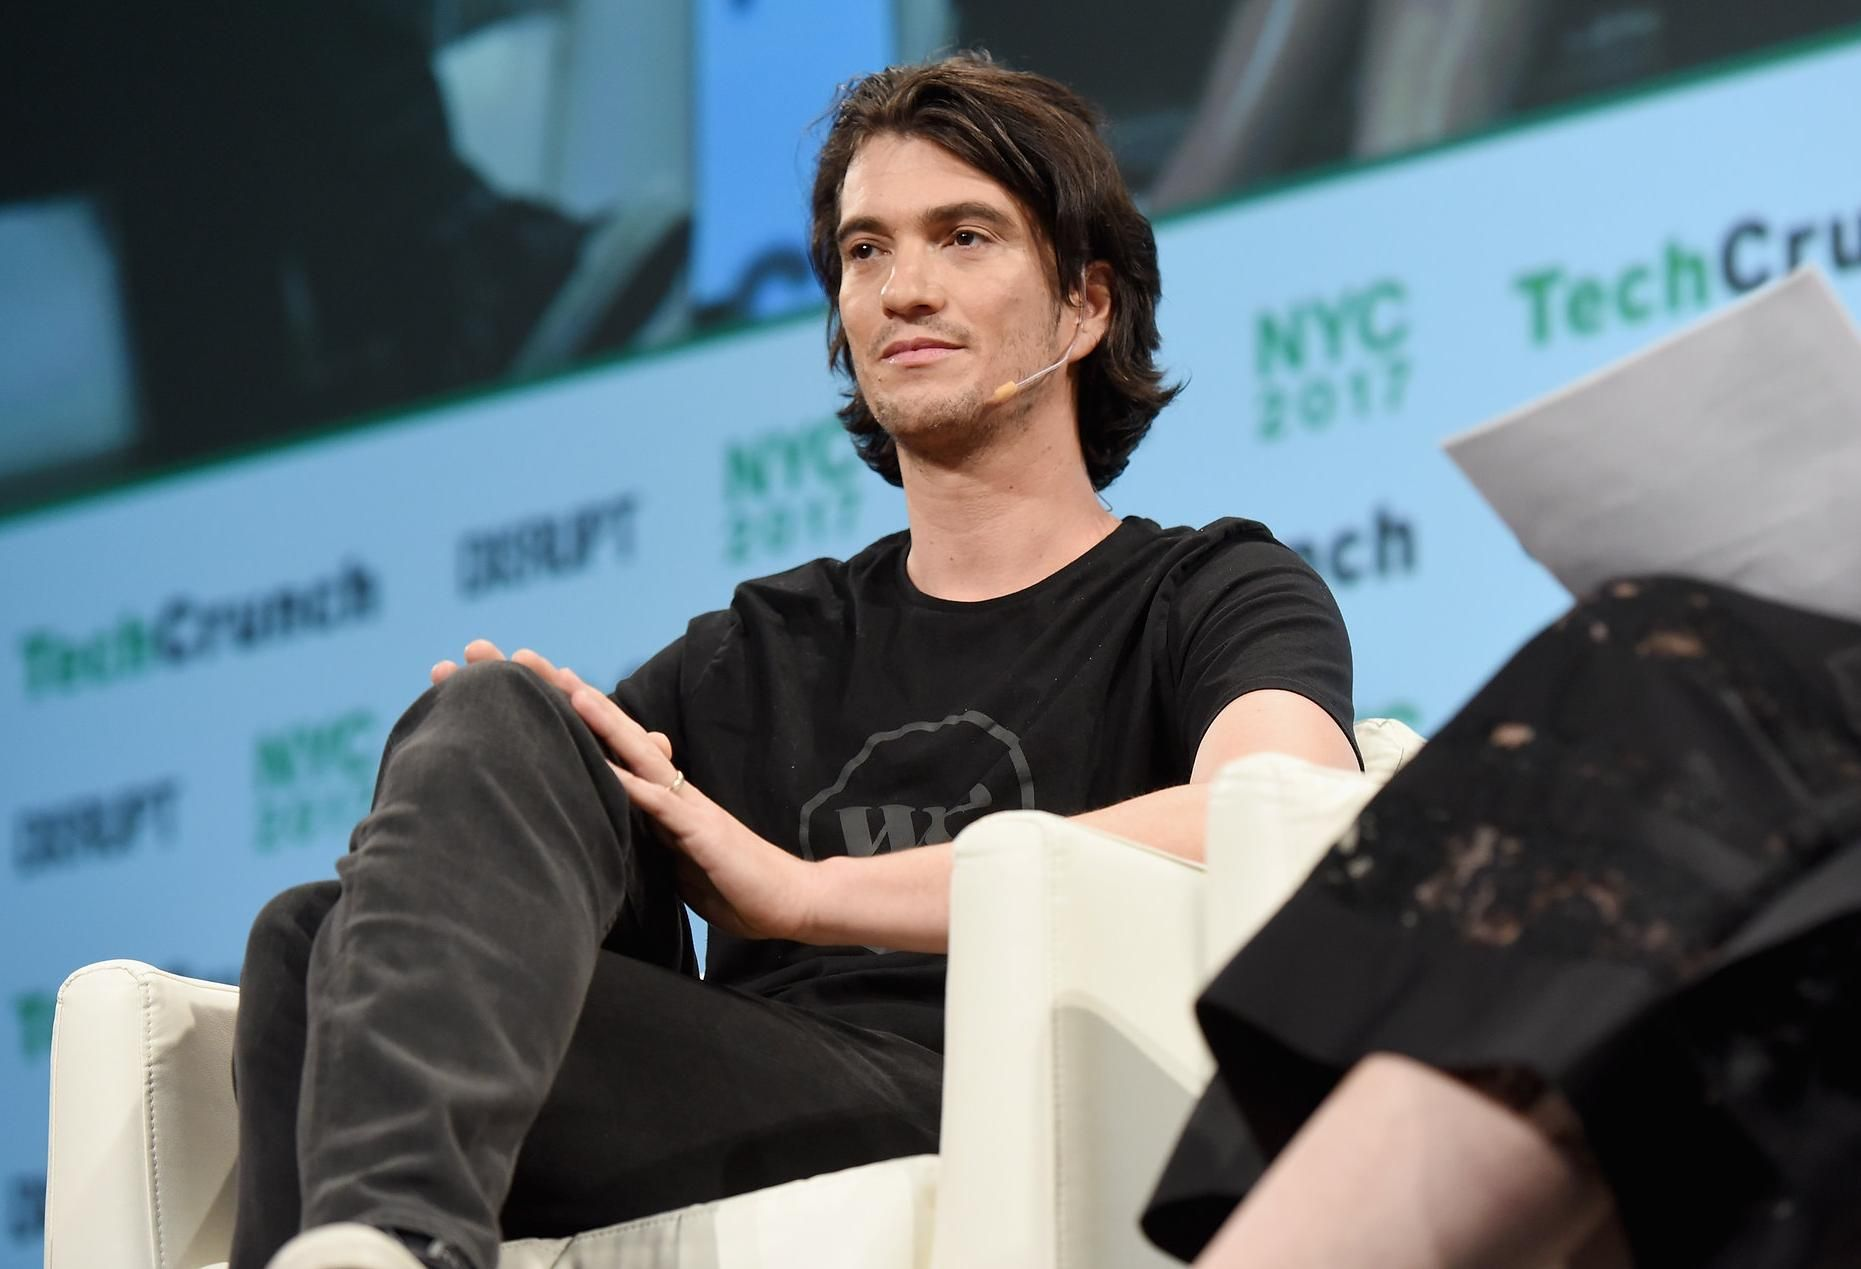 Adam Neumann Has Returned To CRE To Invest In A Multifamily Services Startup